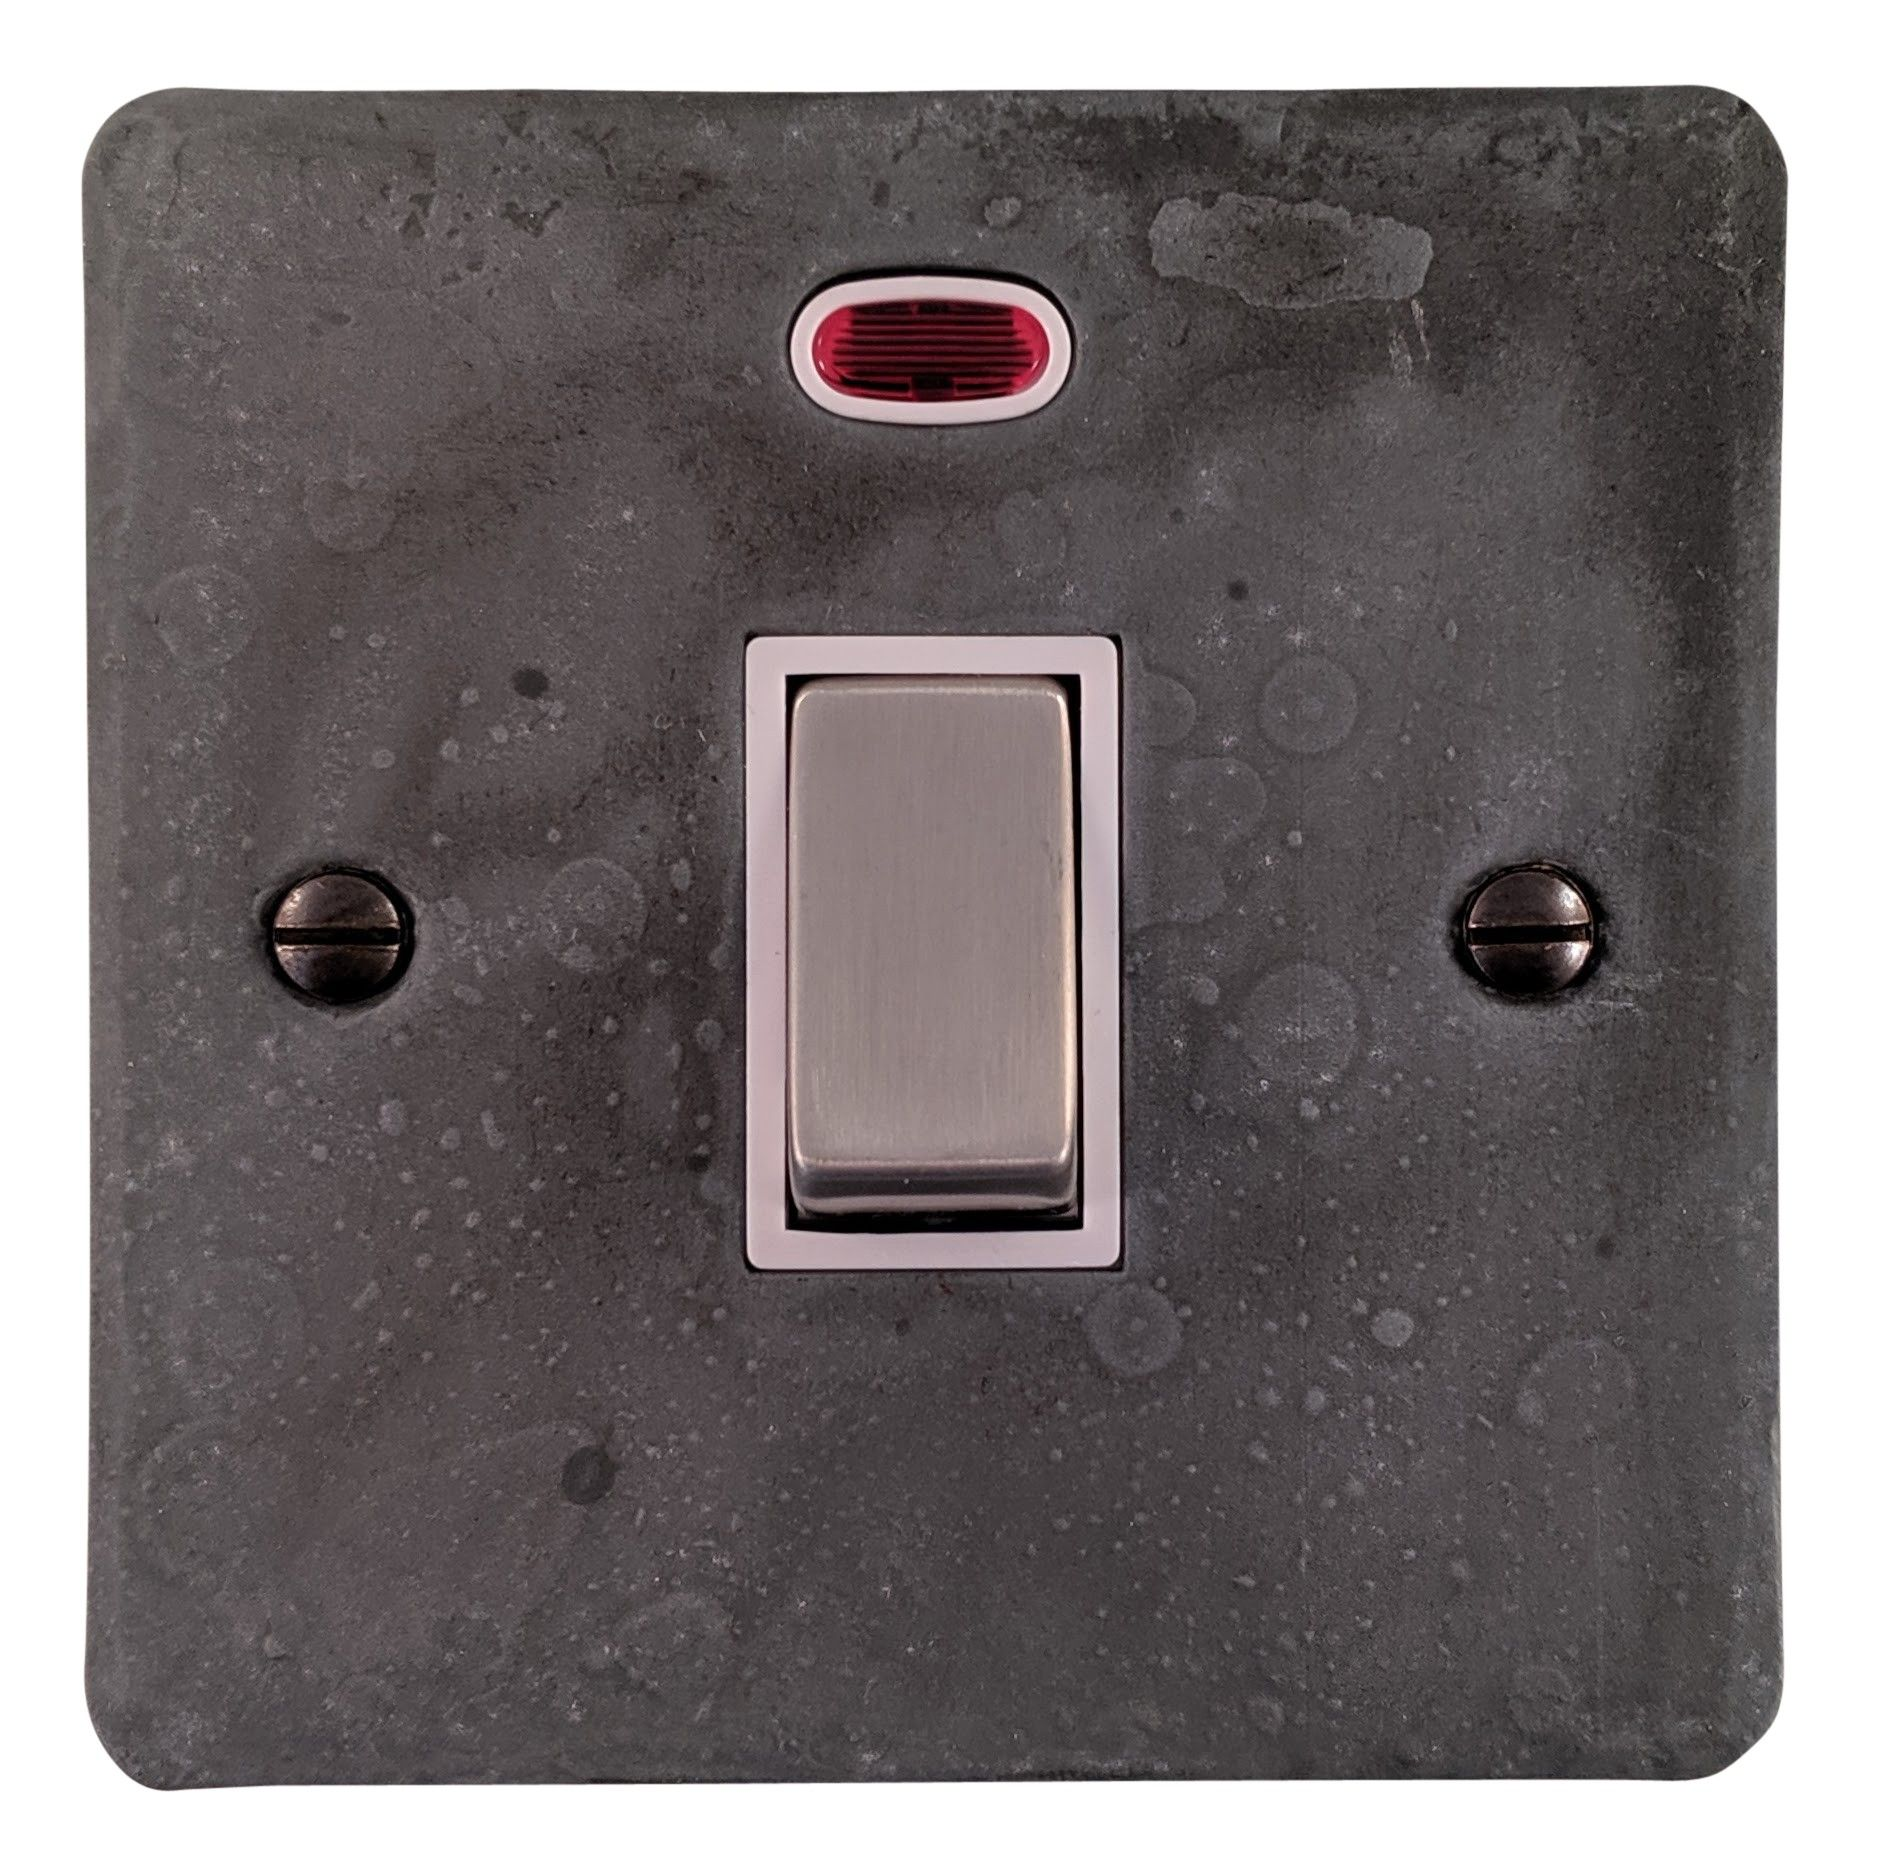 G&H FRP226 Flat Plate Rustic Pewter 1 Gang 20 Amp Double Pole Switch & Neon